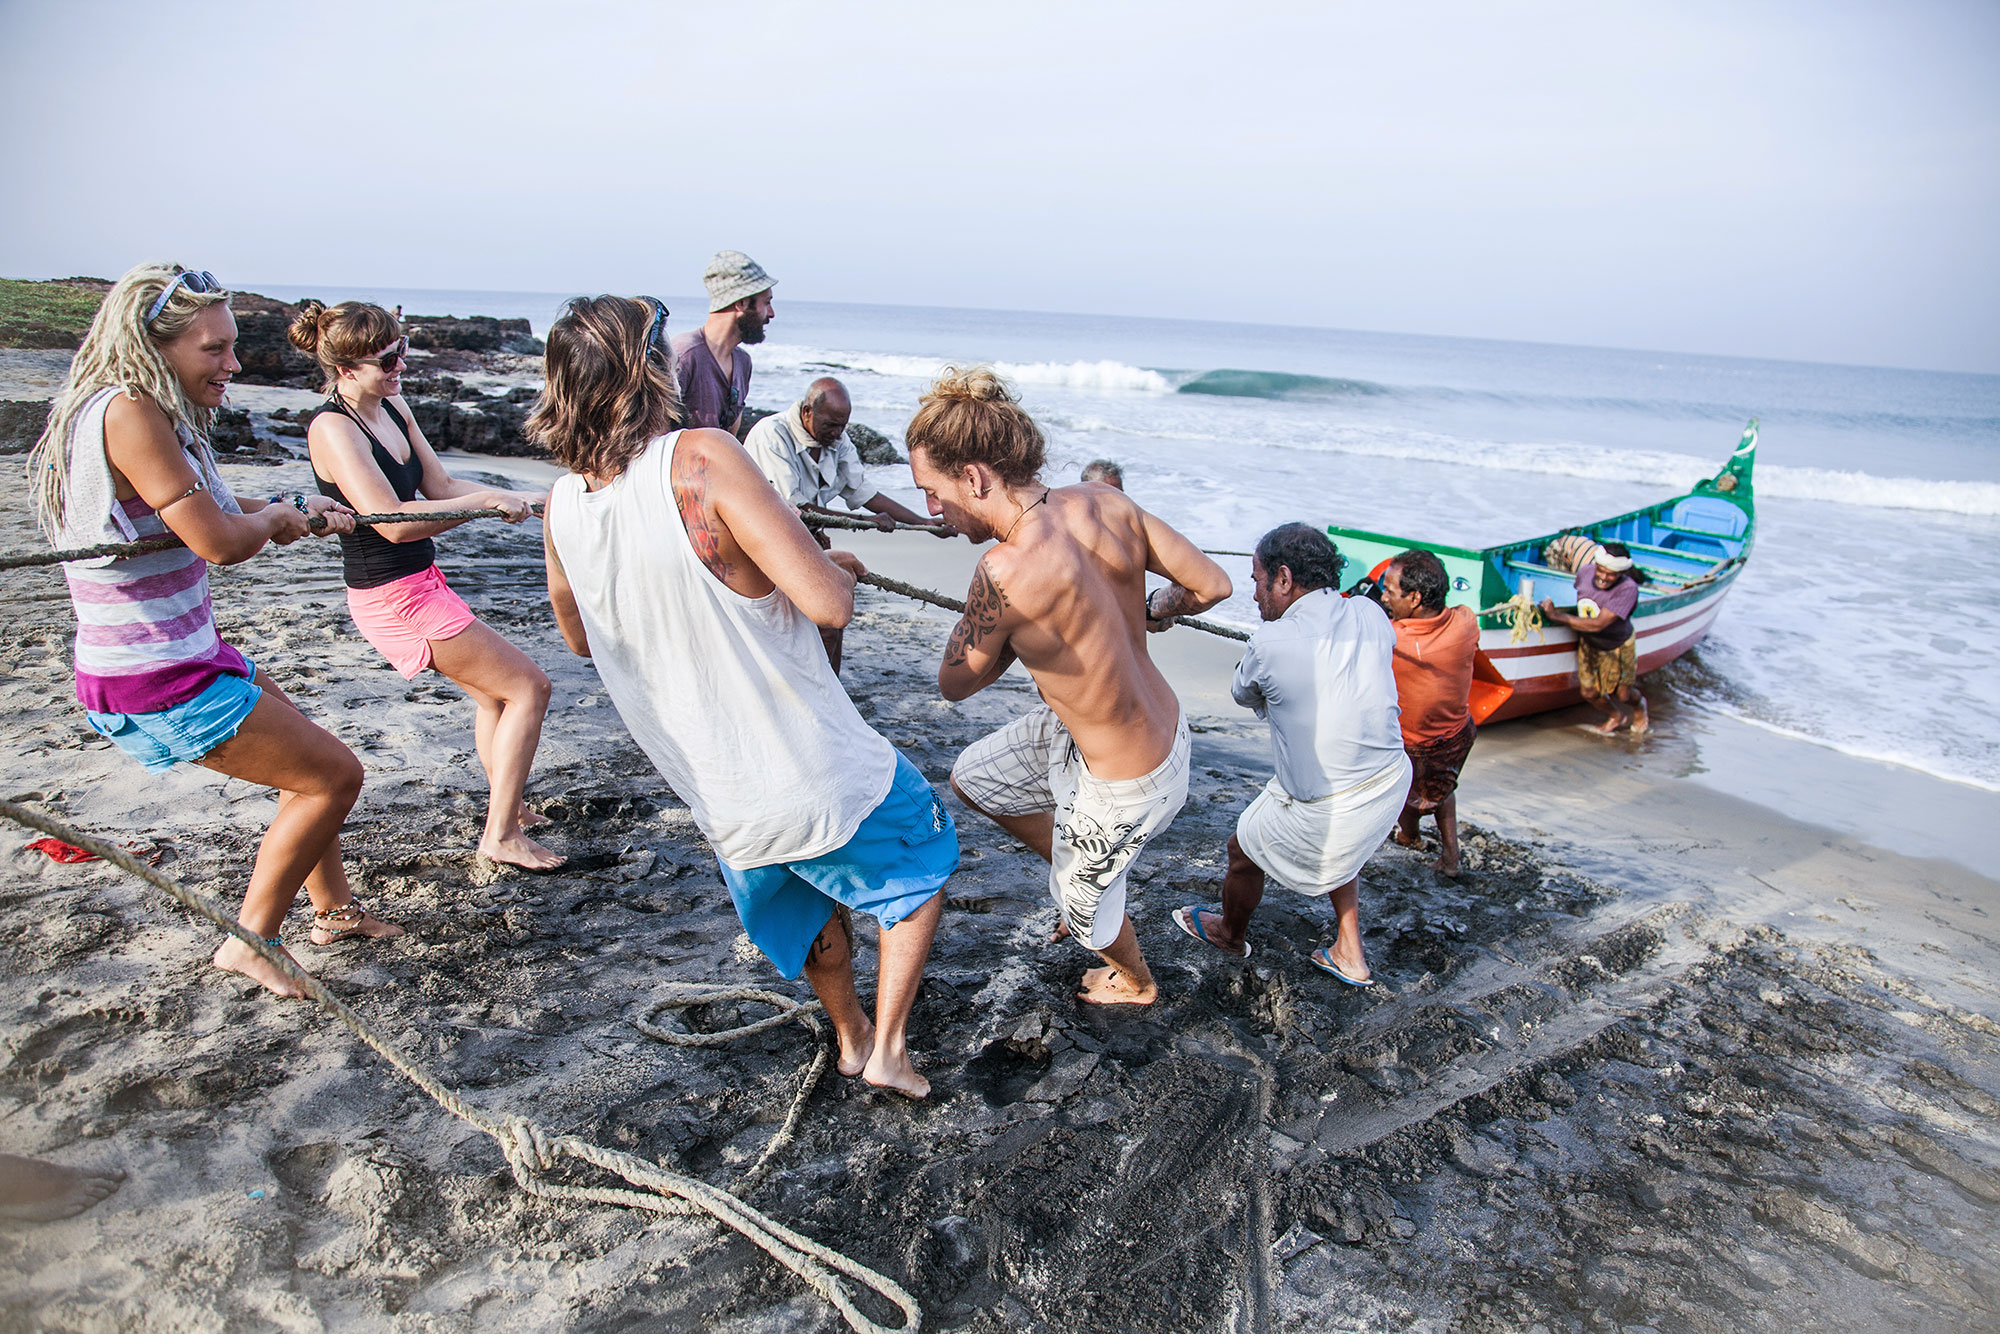 Surfers help fishermen drag their boat to the shore. PHOTO: Berta Tilmante